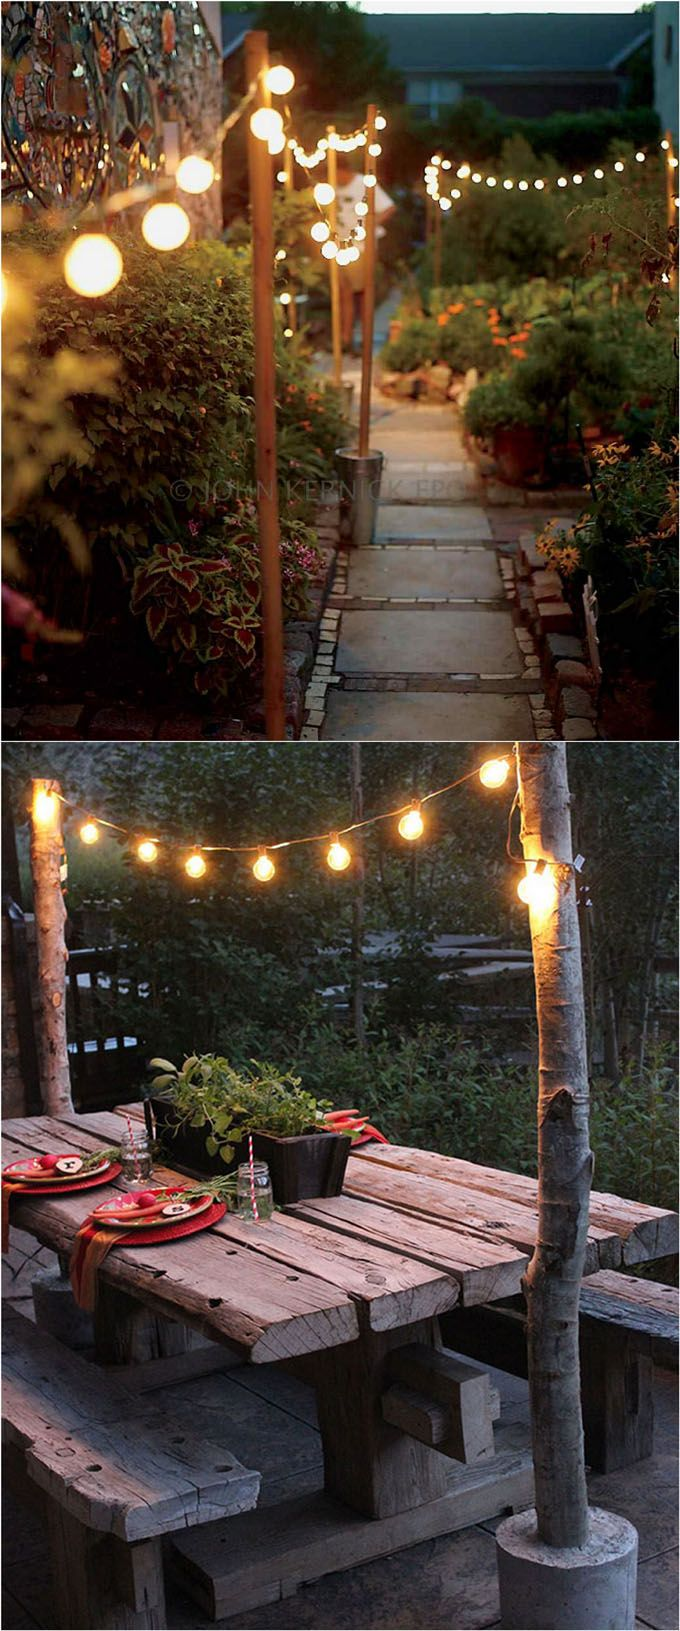 Outside Garden Ideas 17 gorgeous and easy to duplicate outdoor lighting ideas for your garden or patio 28 Stunning Easy Diy Outdoor Lights